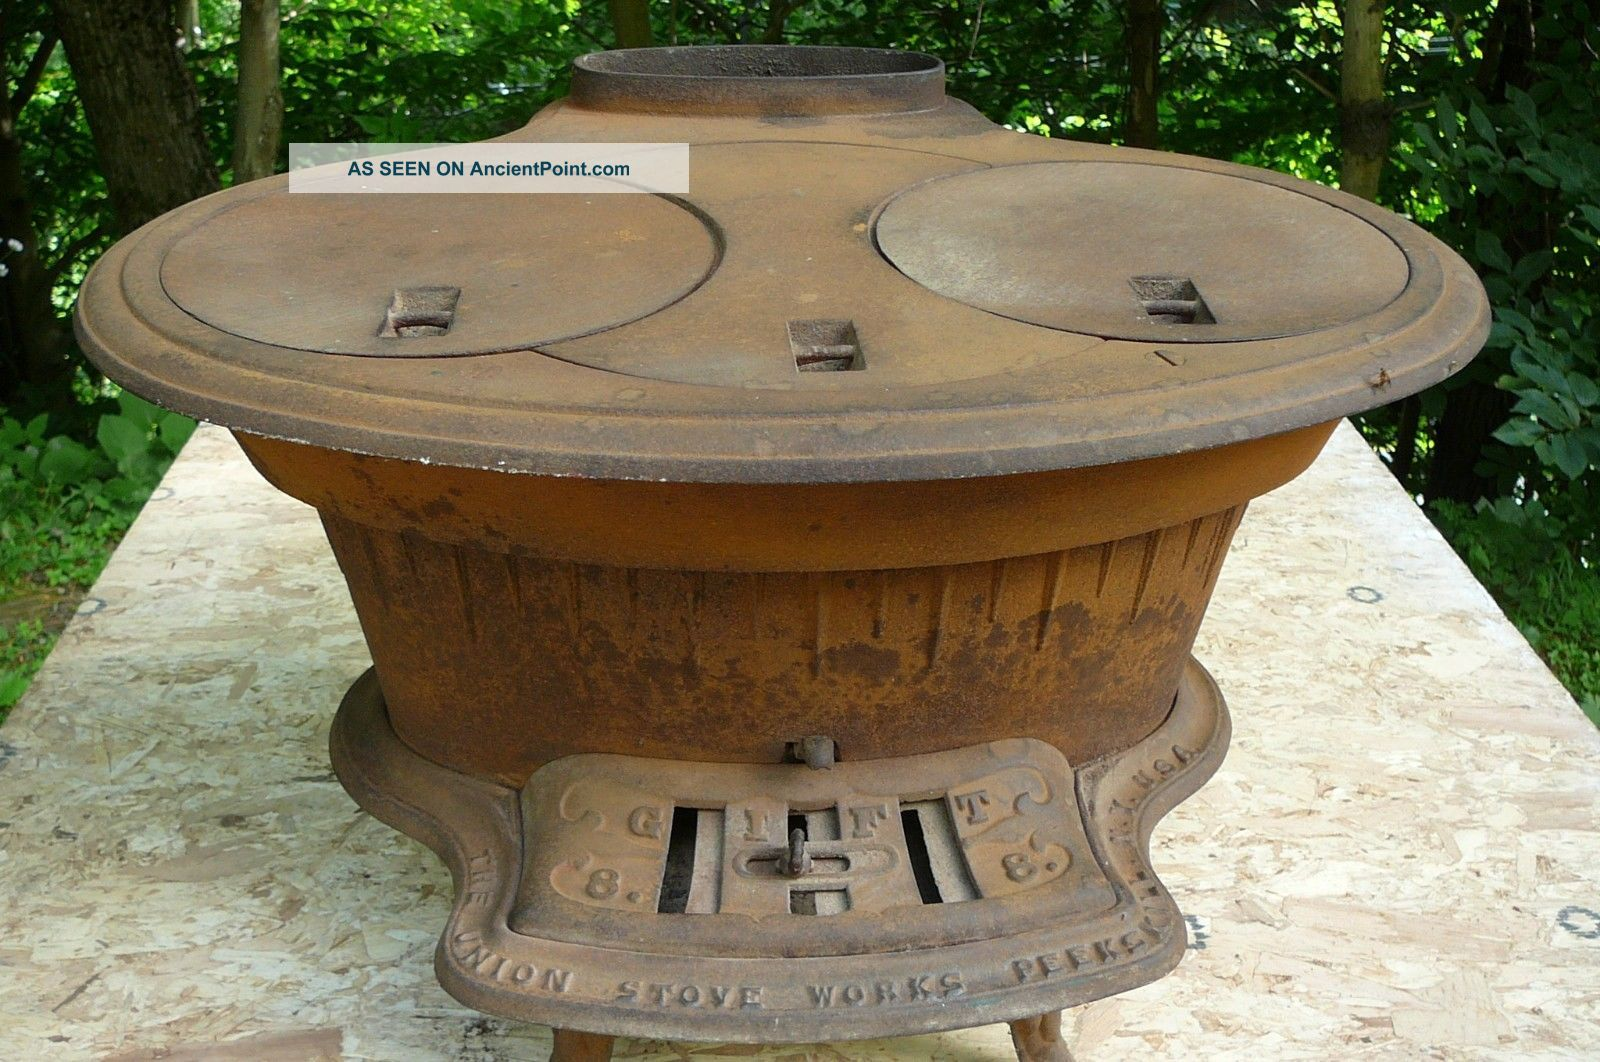 Antique Late1800s Wood Cook Stove The Union Stove Corp,  R.  R.  Finch & Sons Stoves photo